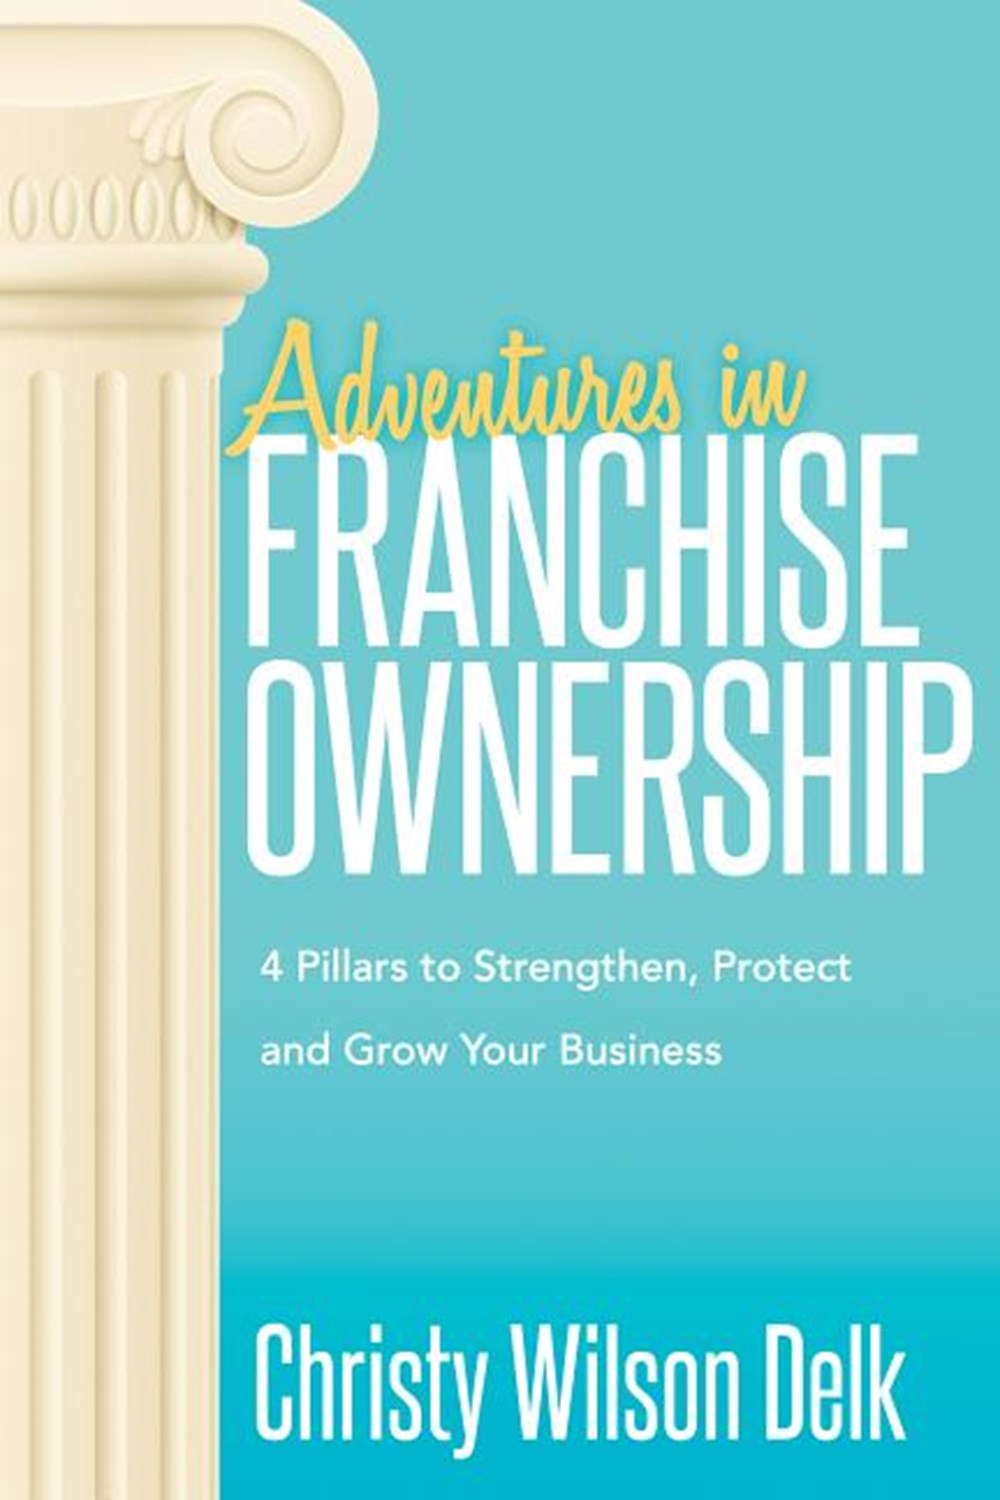 Adventures in Franchise Ownership 4 Pillars to Strengthen, Protect and Grow Your Business